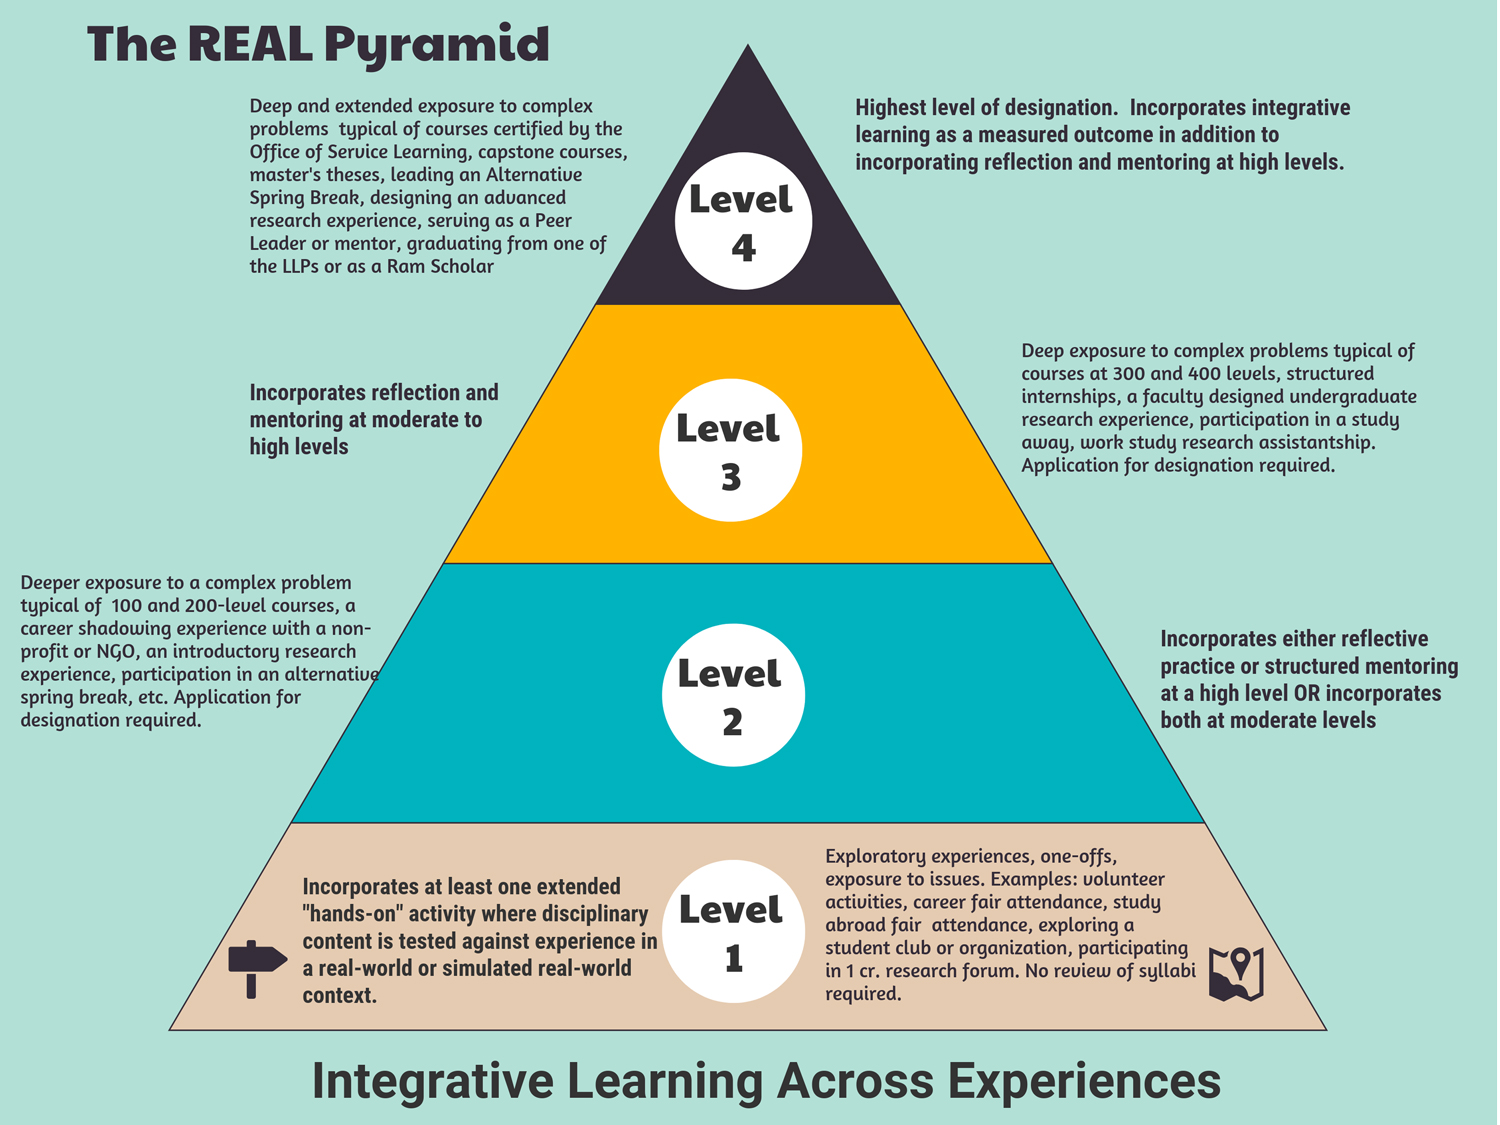 Pyramid showing REAL Levels go from one through four